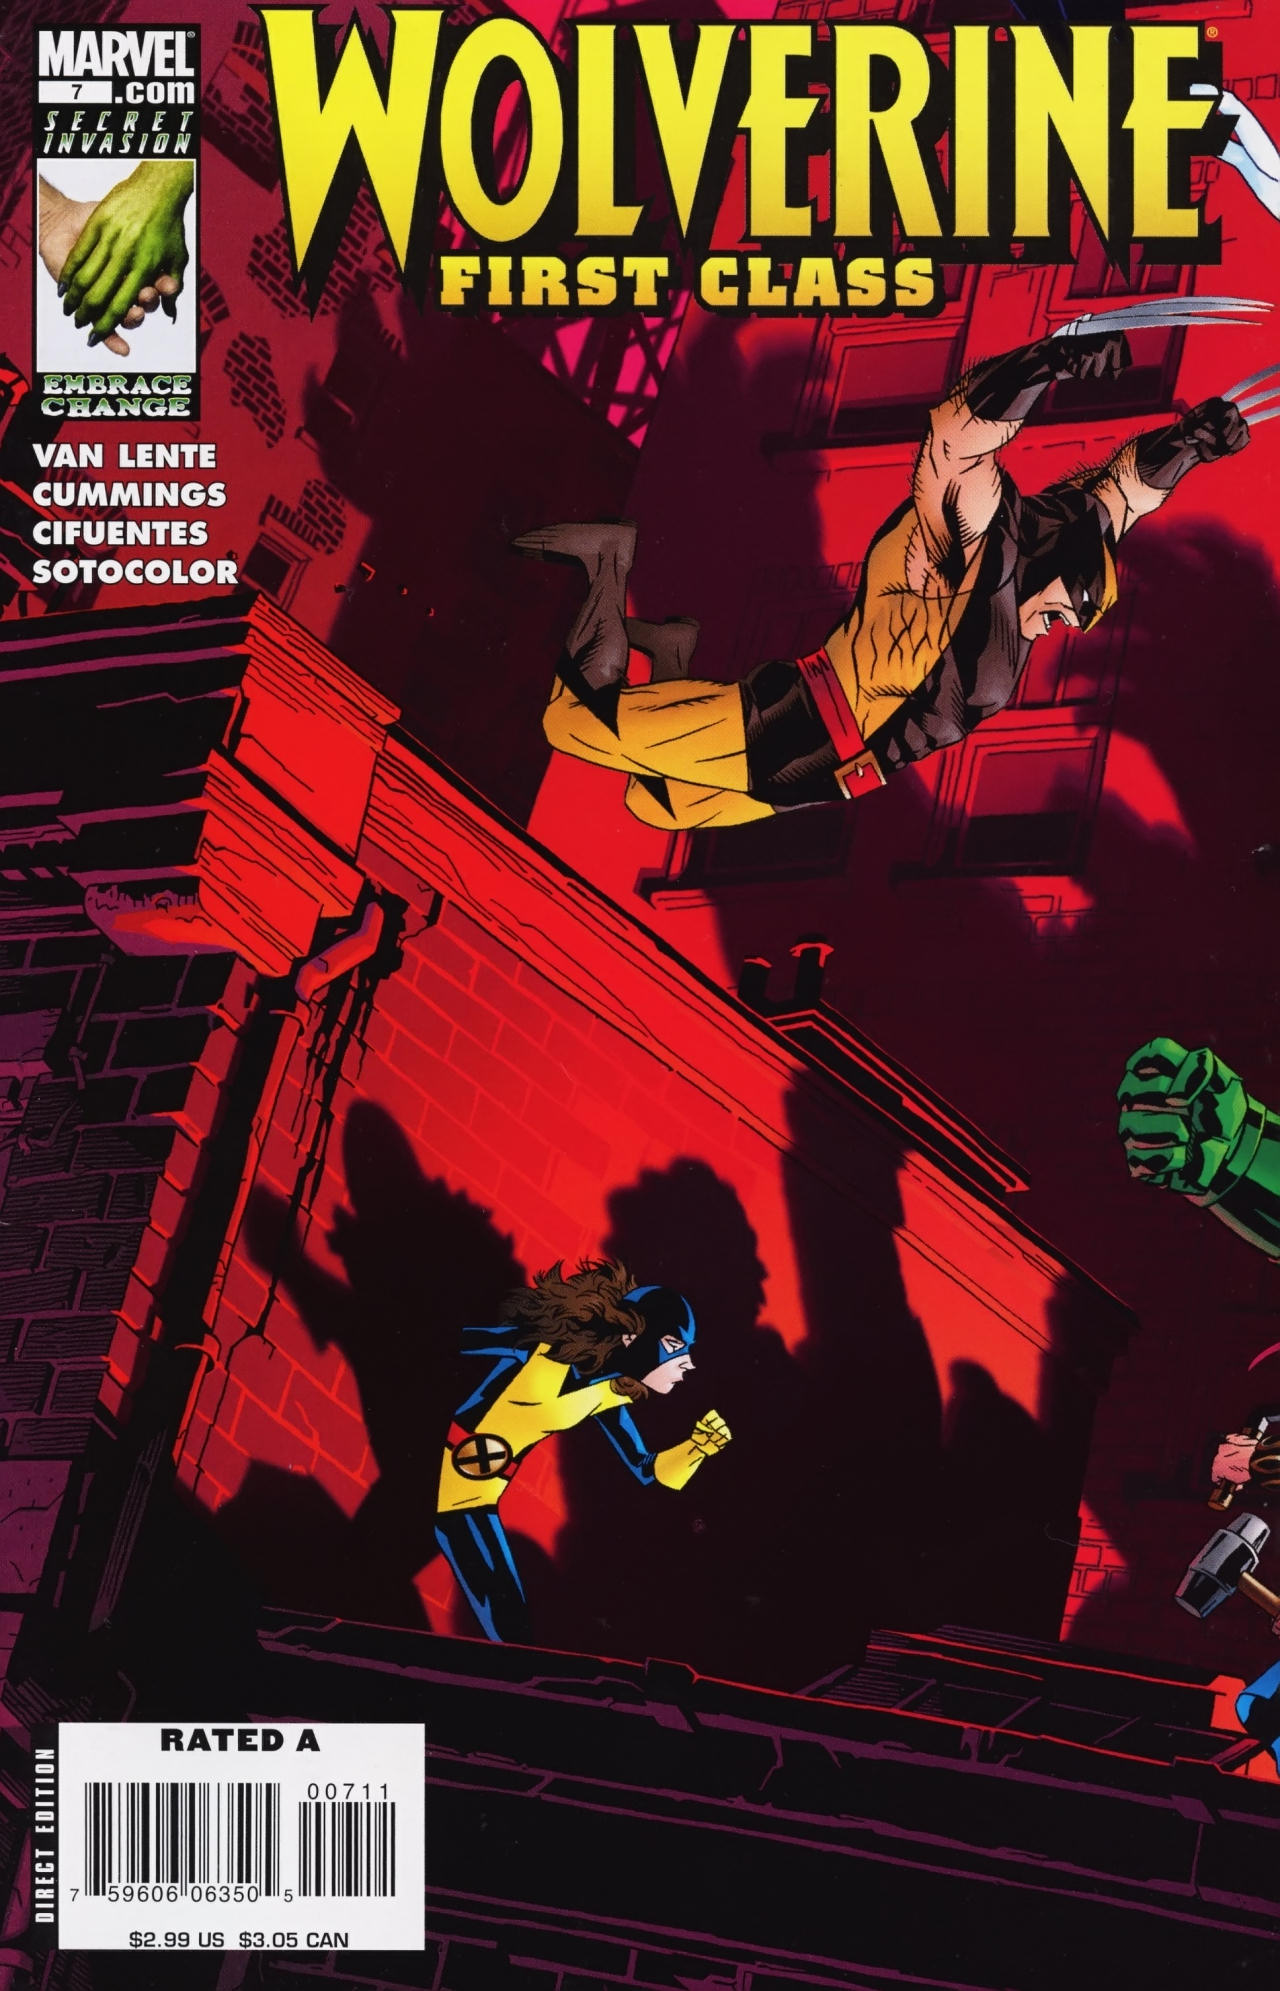 Read online Wolverine: First Class comic -  Issue #7 - 1